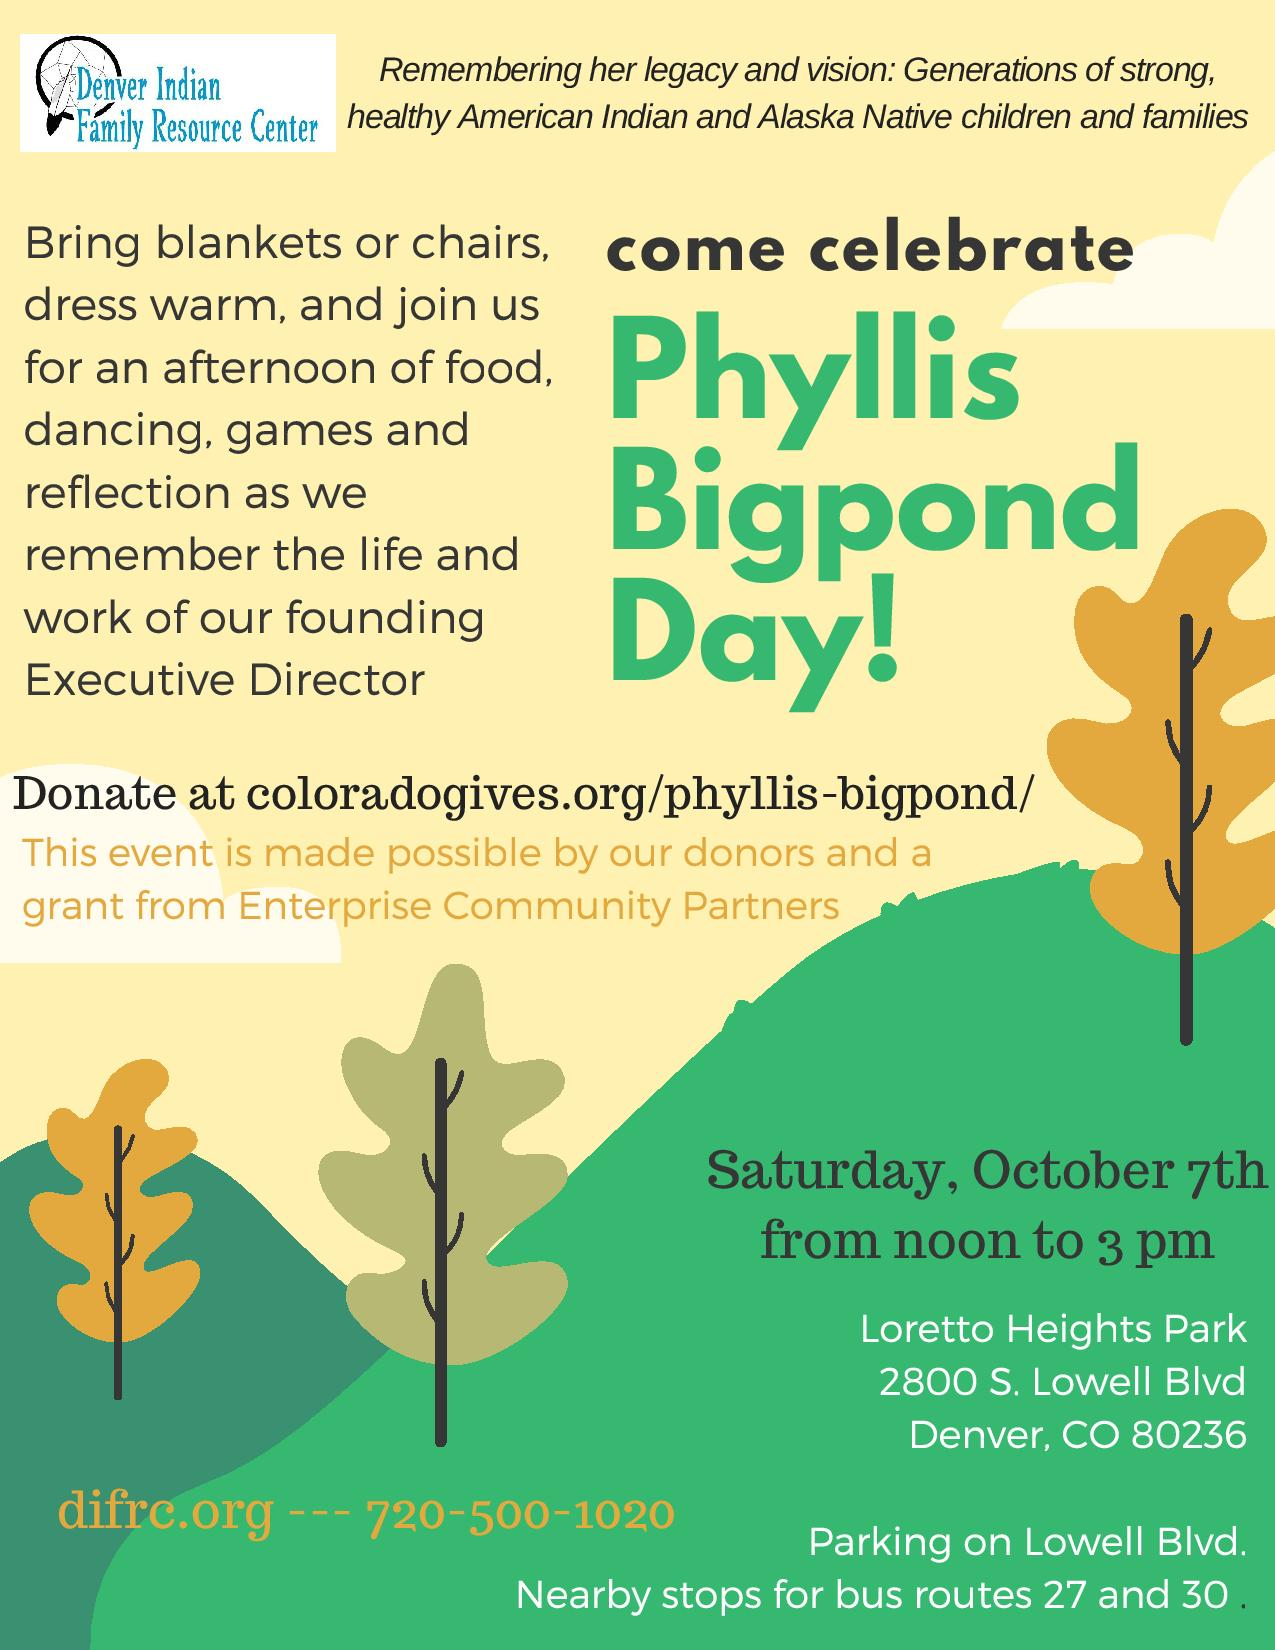 Phyllis Bigpond Day - Denver Indian Family Resource Center